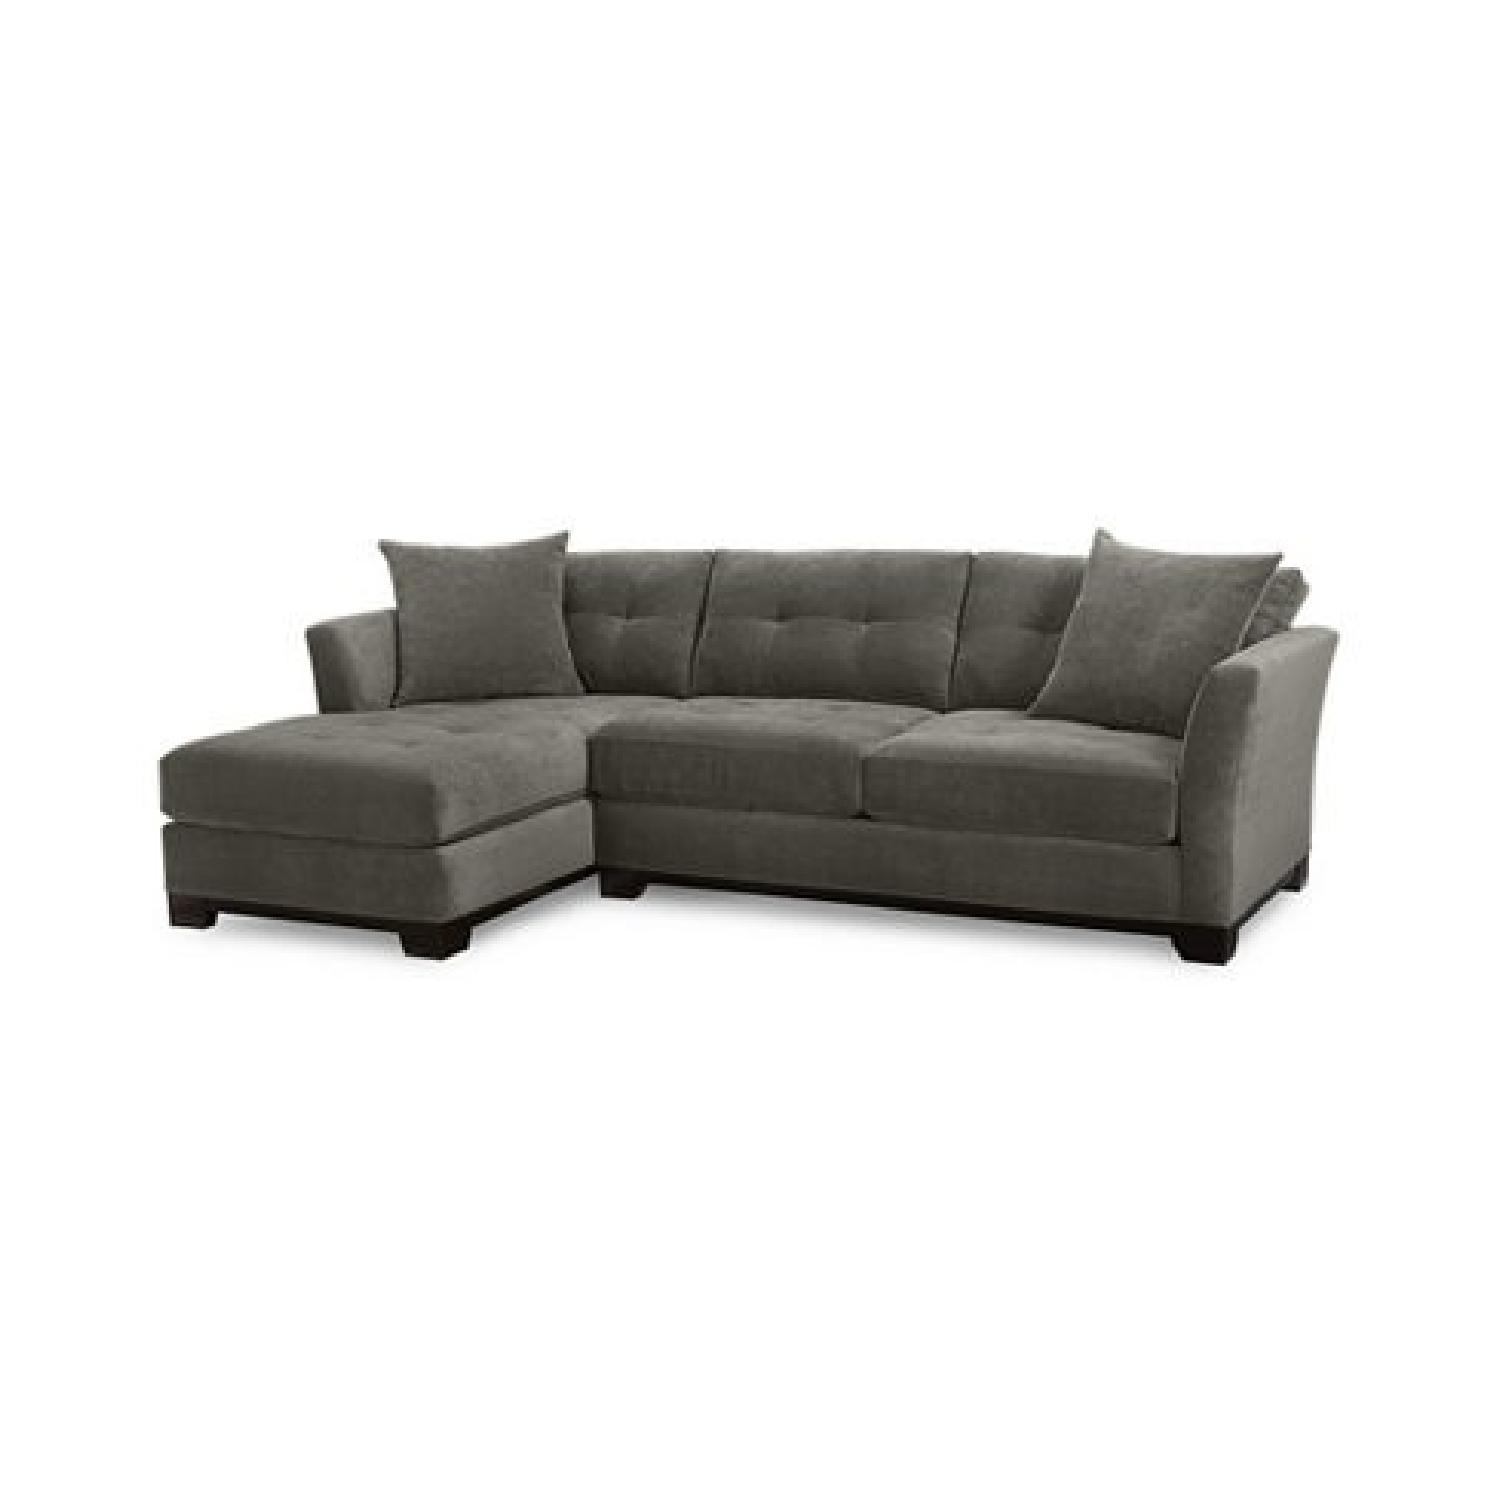 hoffman joybird main sectionals eliot megan sectional img photo reversible elliot the by shop look